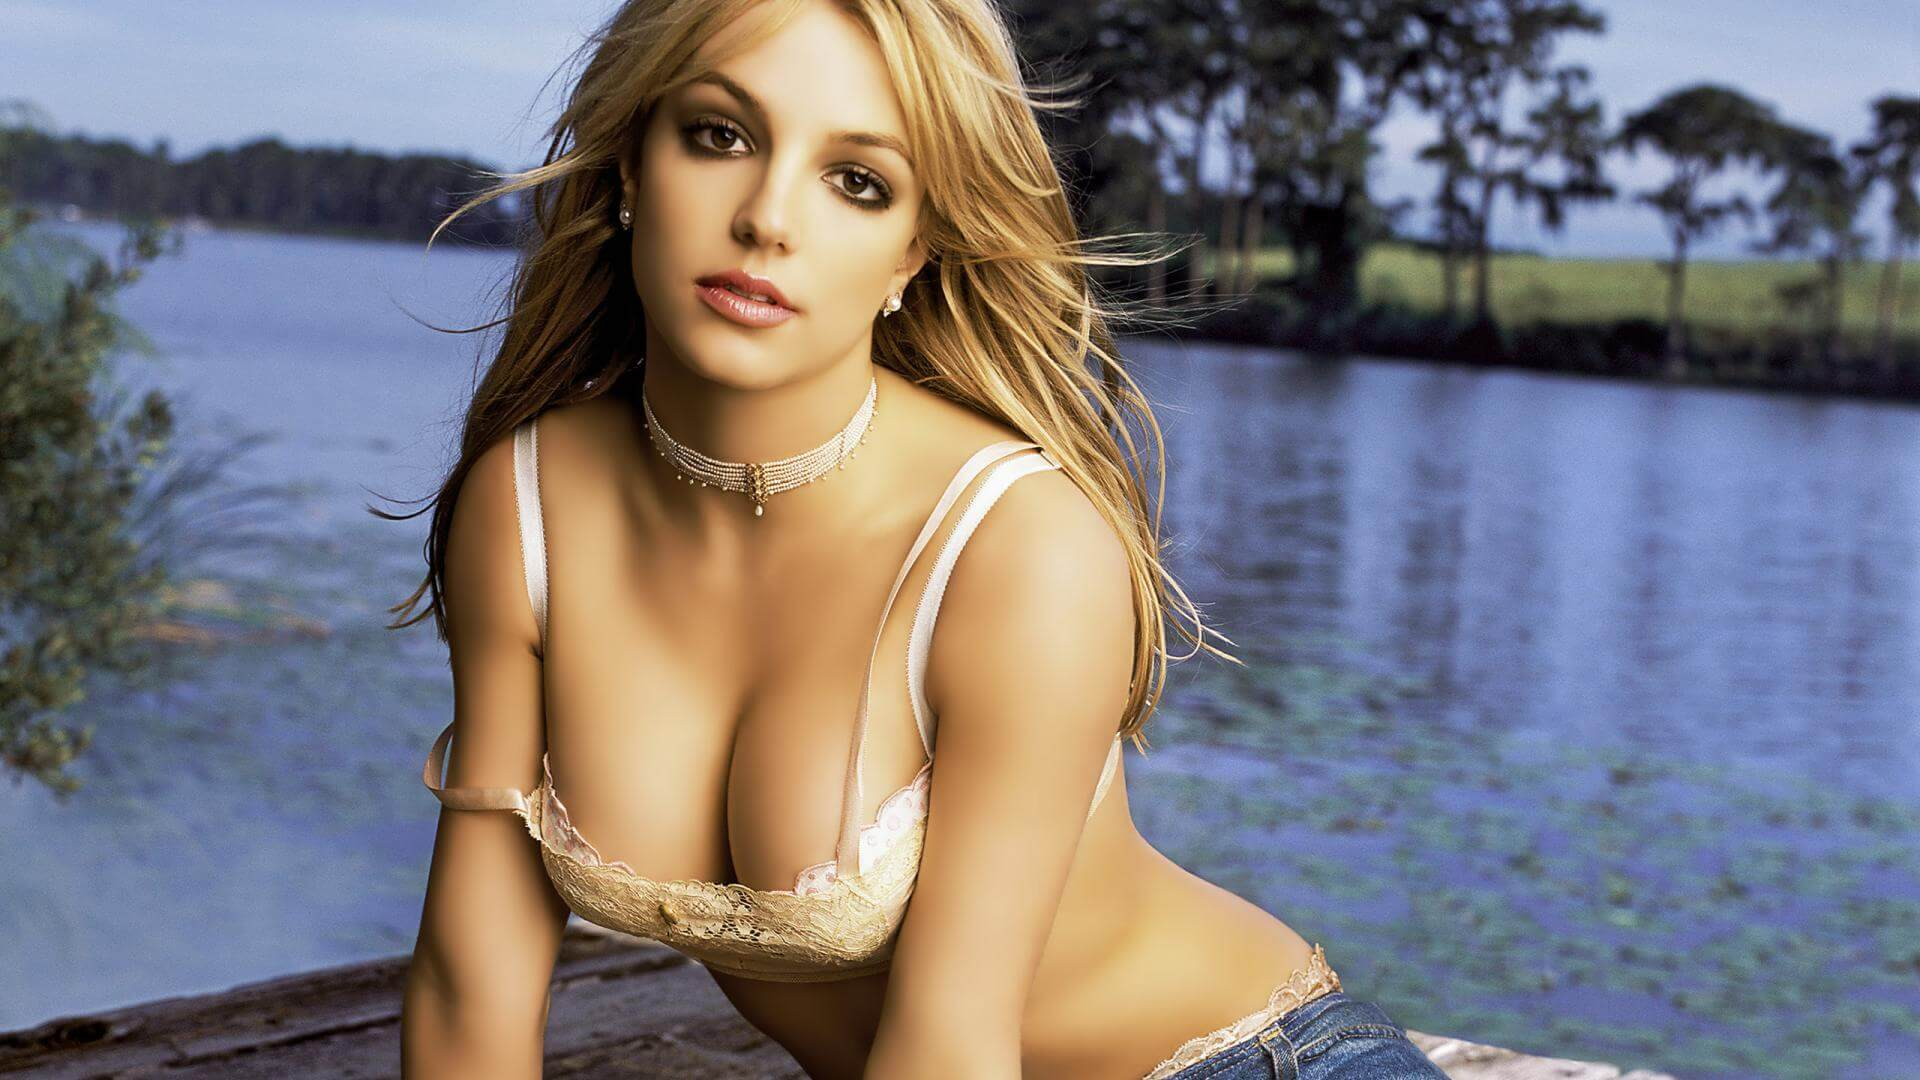 Britney Spears hot cleavage pics